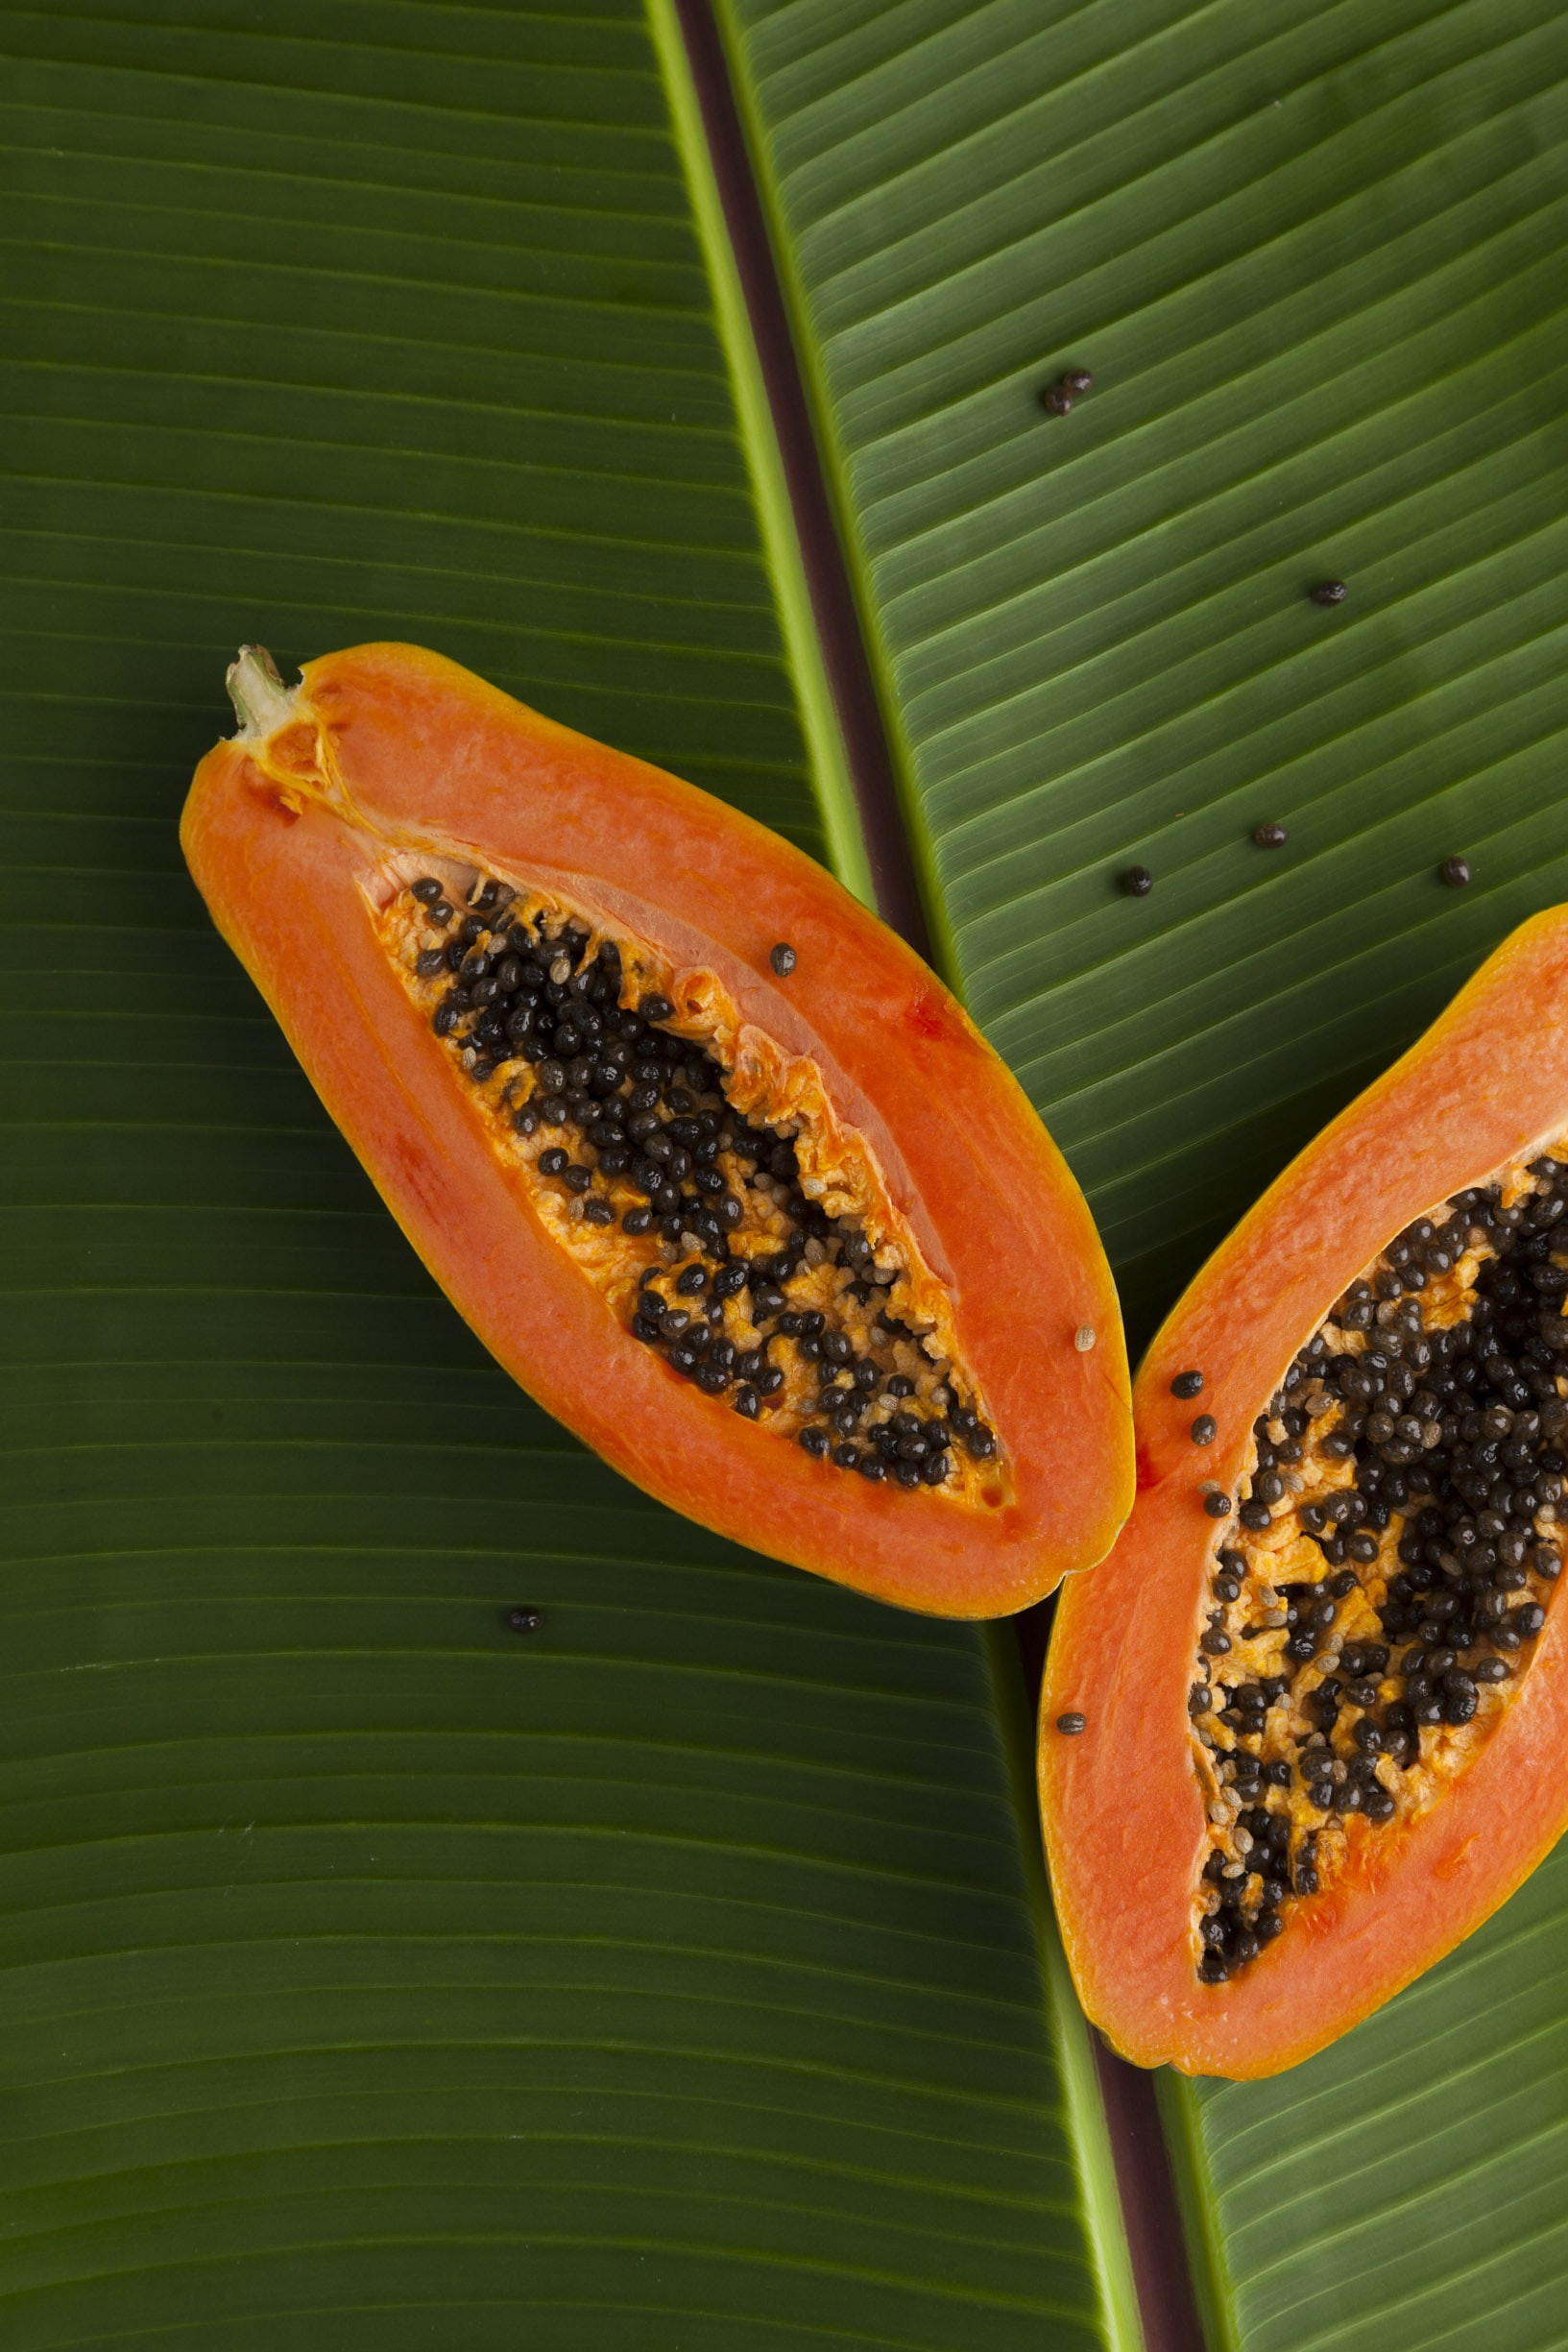 sliced papaya on green banana leaf